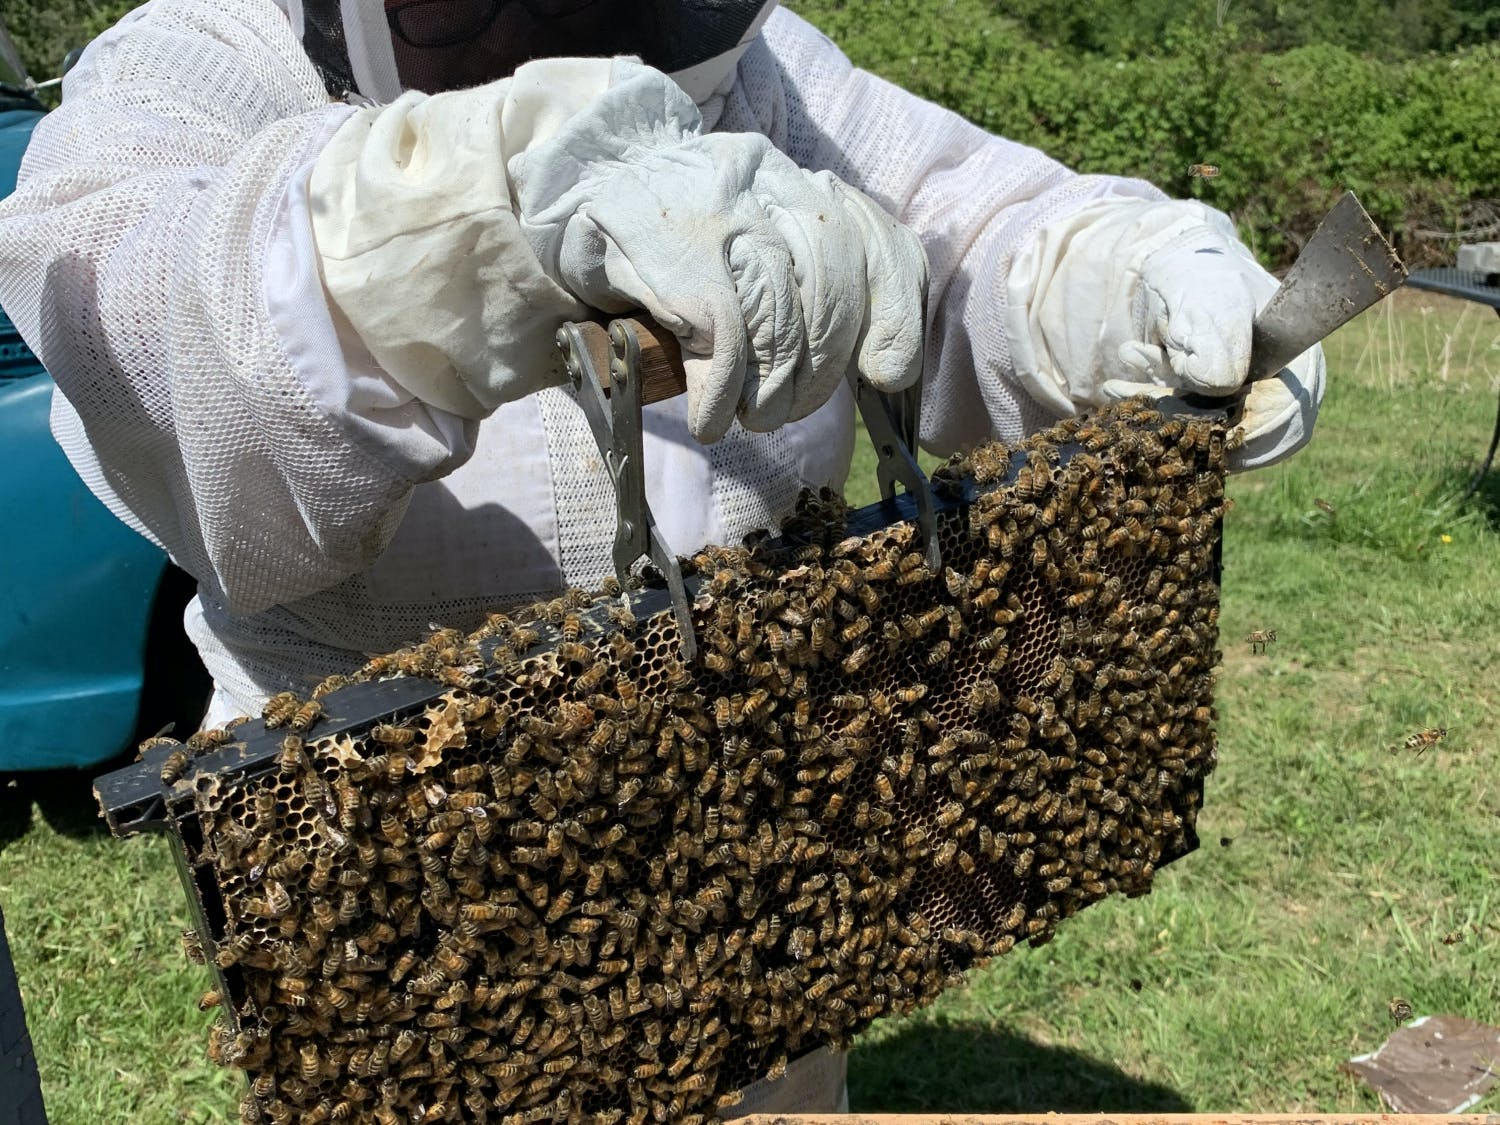 A beekeeper grabs ahold of part of a hive during May in Bellingham, Wash. Beekeeper Marisa Papetti said a late spring may have been a factor in fewer bee sightings in Bellingham this year. // Photo courtesy of Noah Hadley